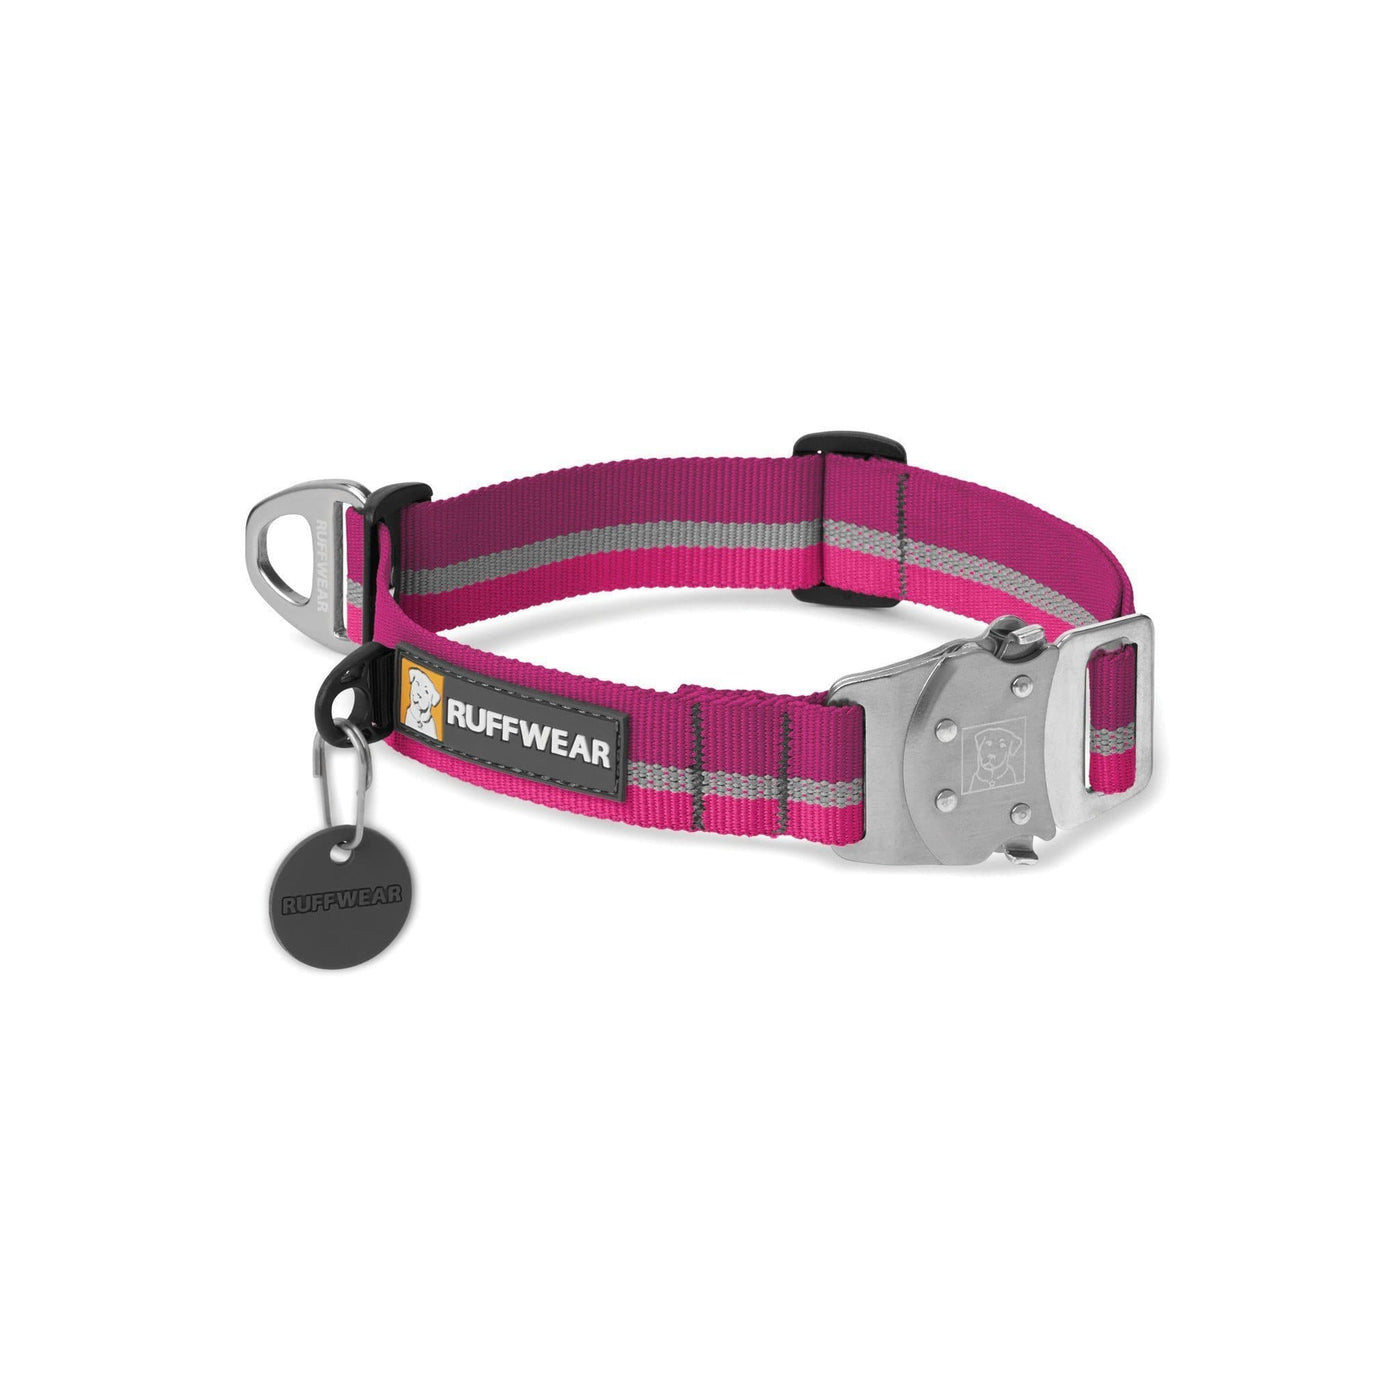 Collar para Perros Modelo Top Rope™ Collar Purpura - Ruffwear – La ...